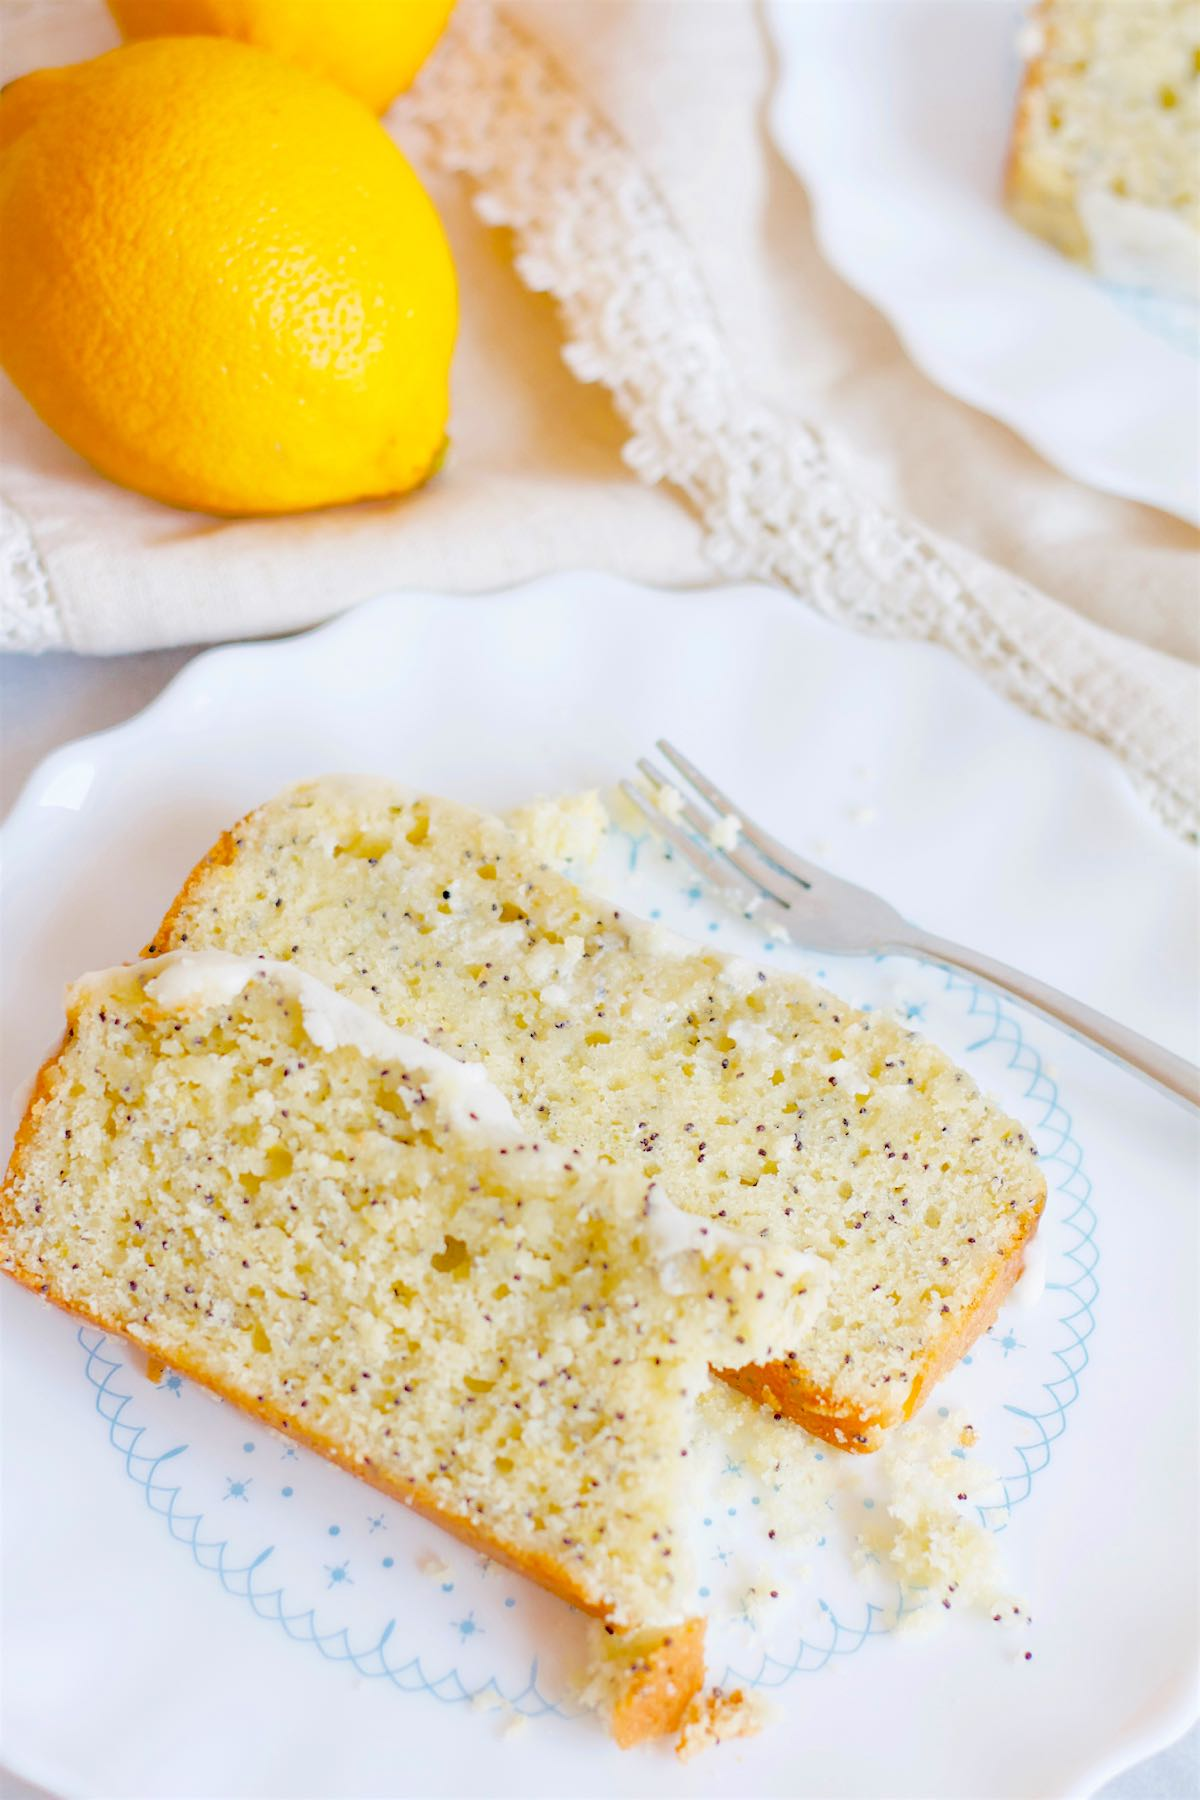 Slices of Lemon Poppy Seed Loaf on a plate